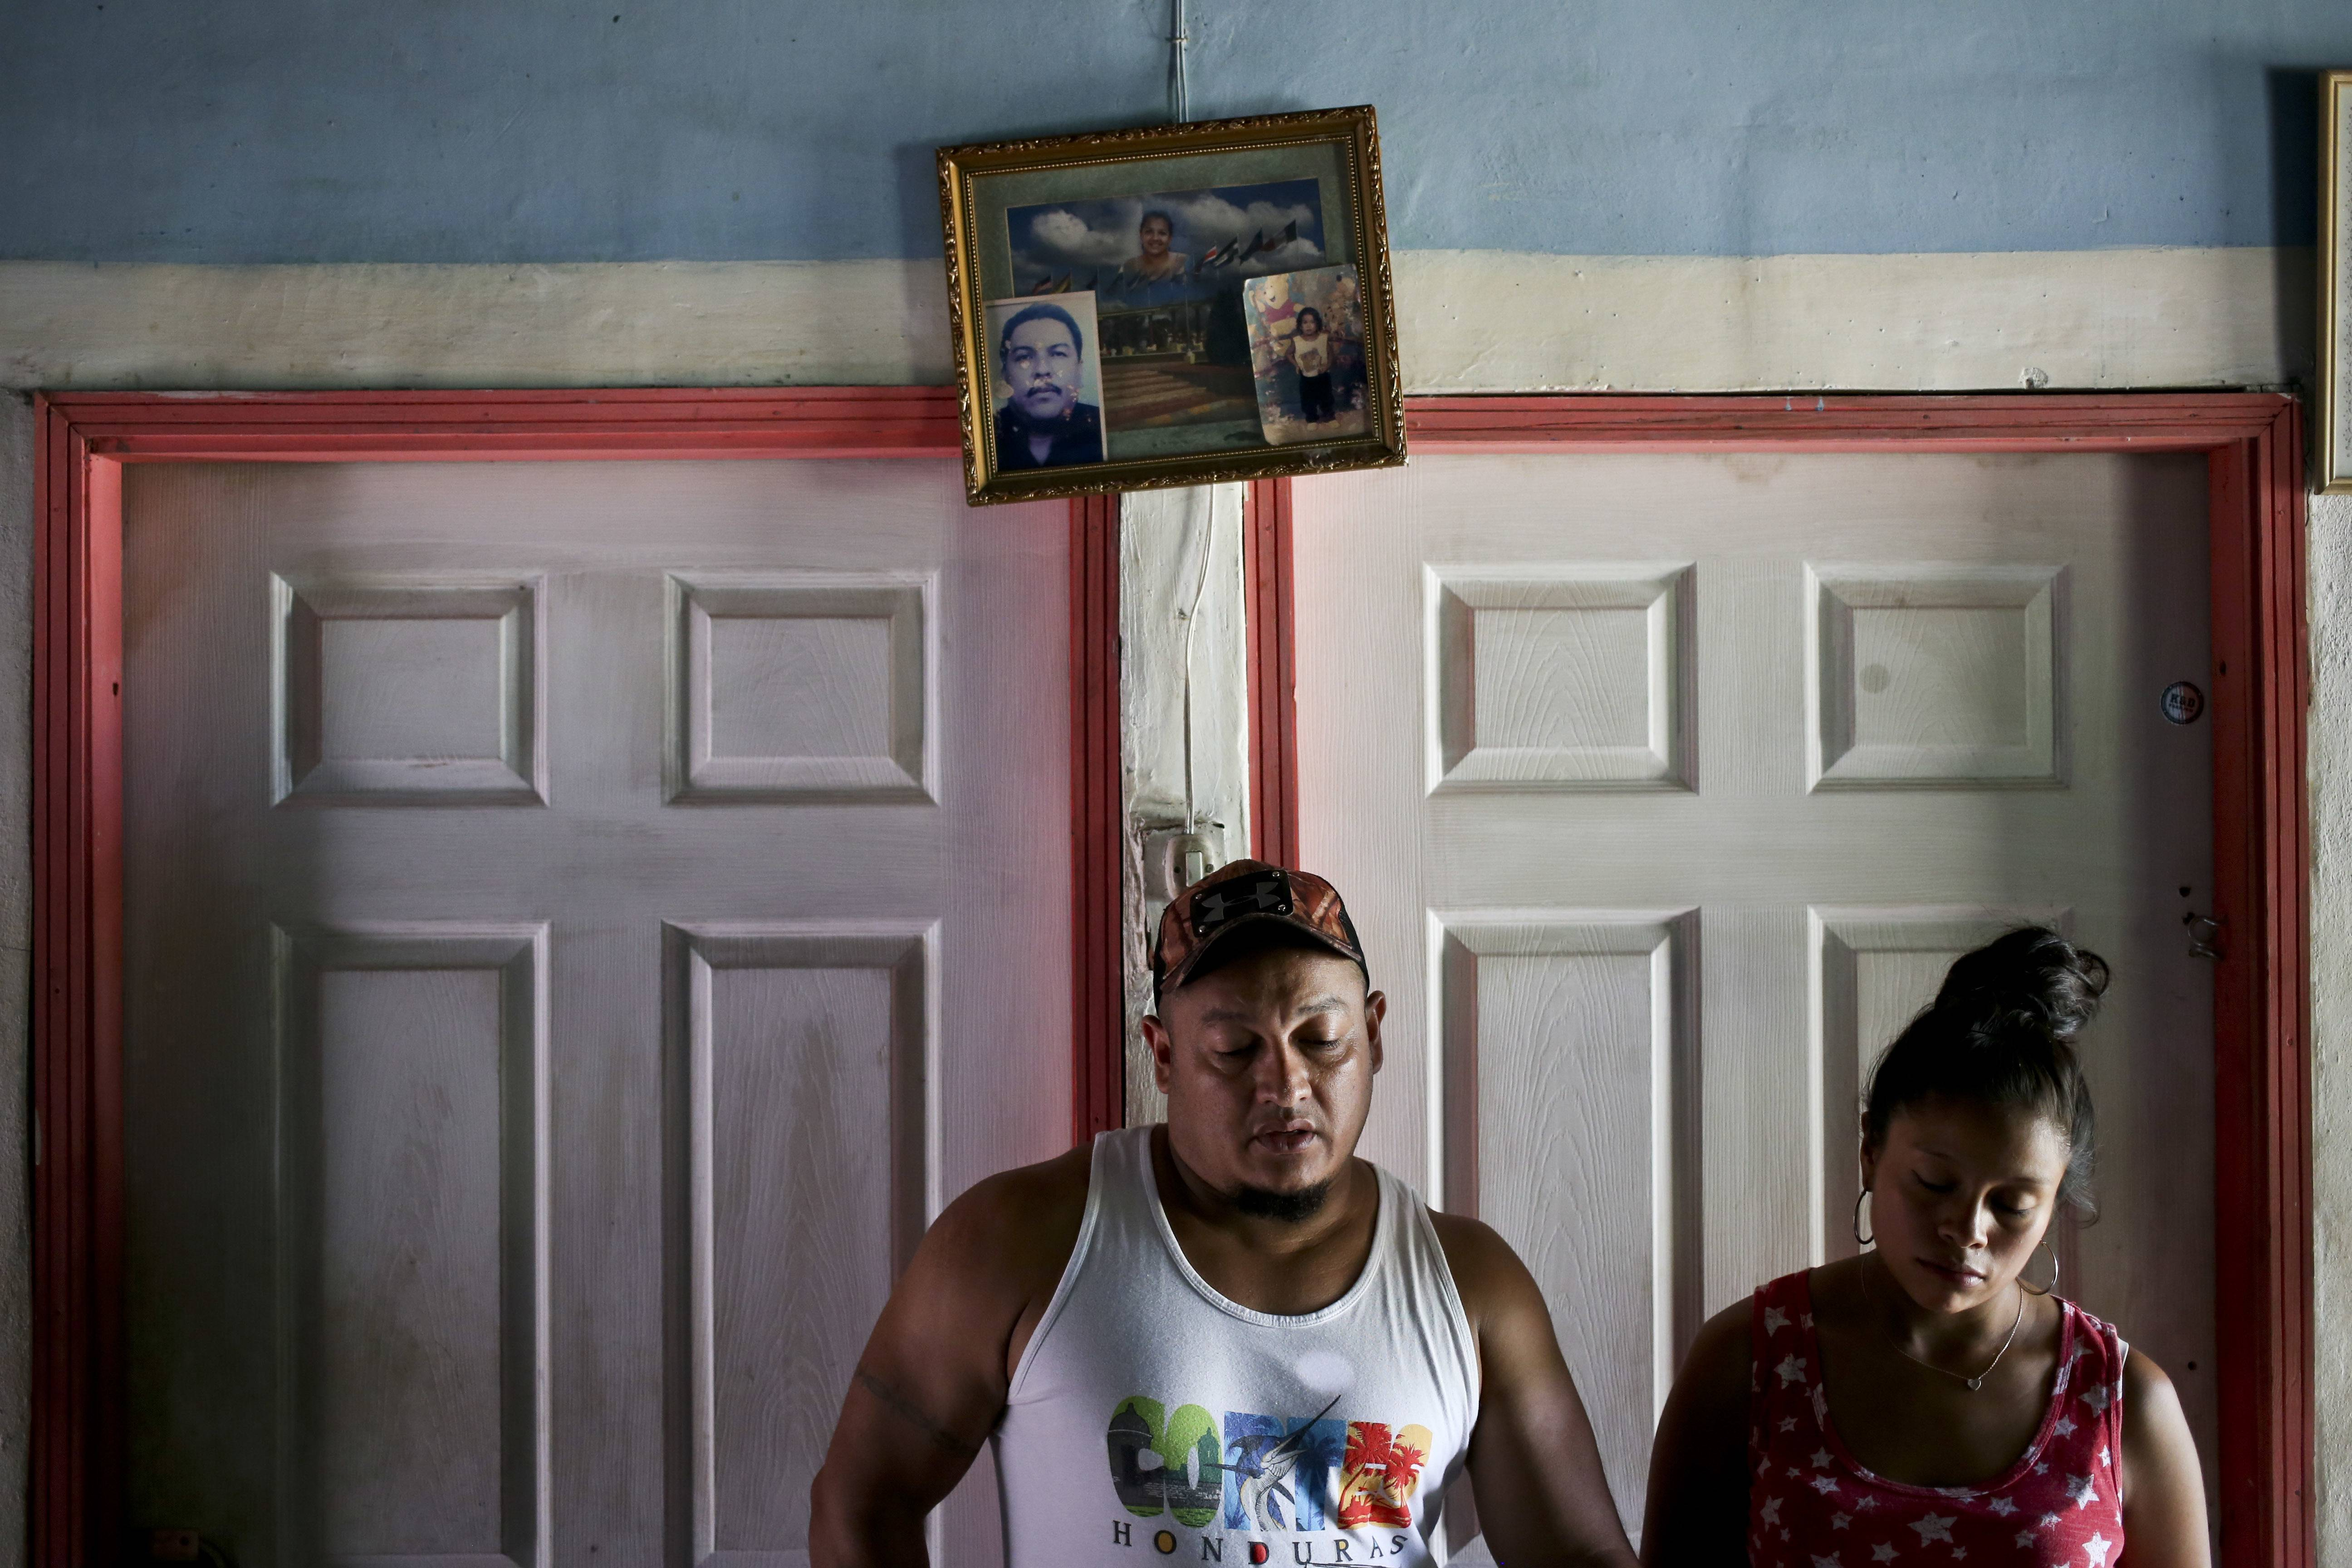 In this July 18, 2018 photo, Rolando Bueso Castillo and his wife Adalicia Montecinos, stand in their home in La Libertad, Honduras. It's been five months since they have seen their infant son Johan Bueso Castillo who was separated from Bueso Castillo at the Texas border in March and sent to a shelter in Arizona. (AP Photo/Esteban Felix)